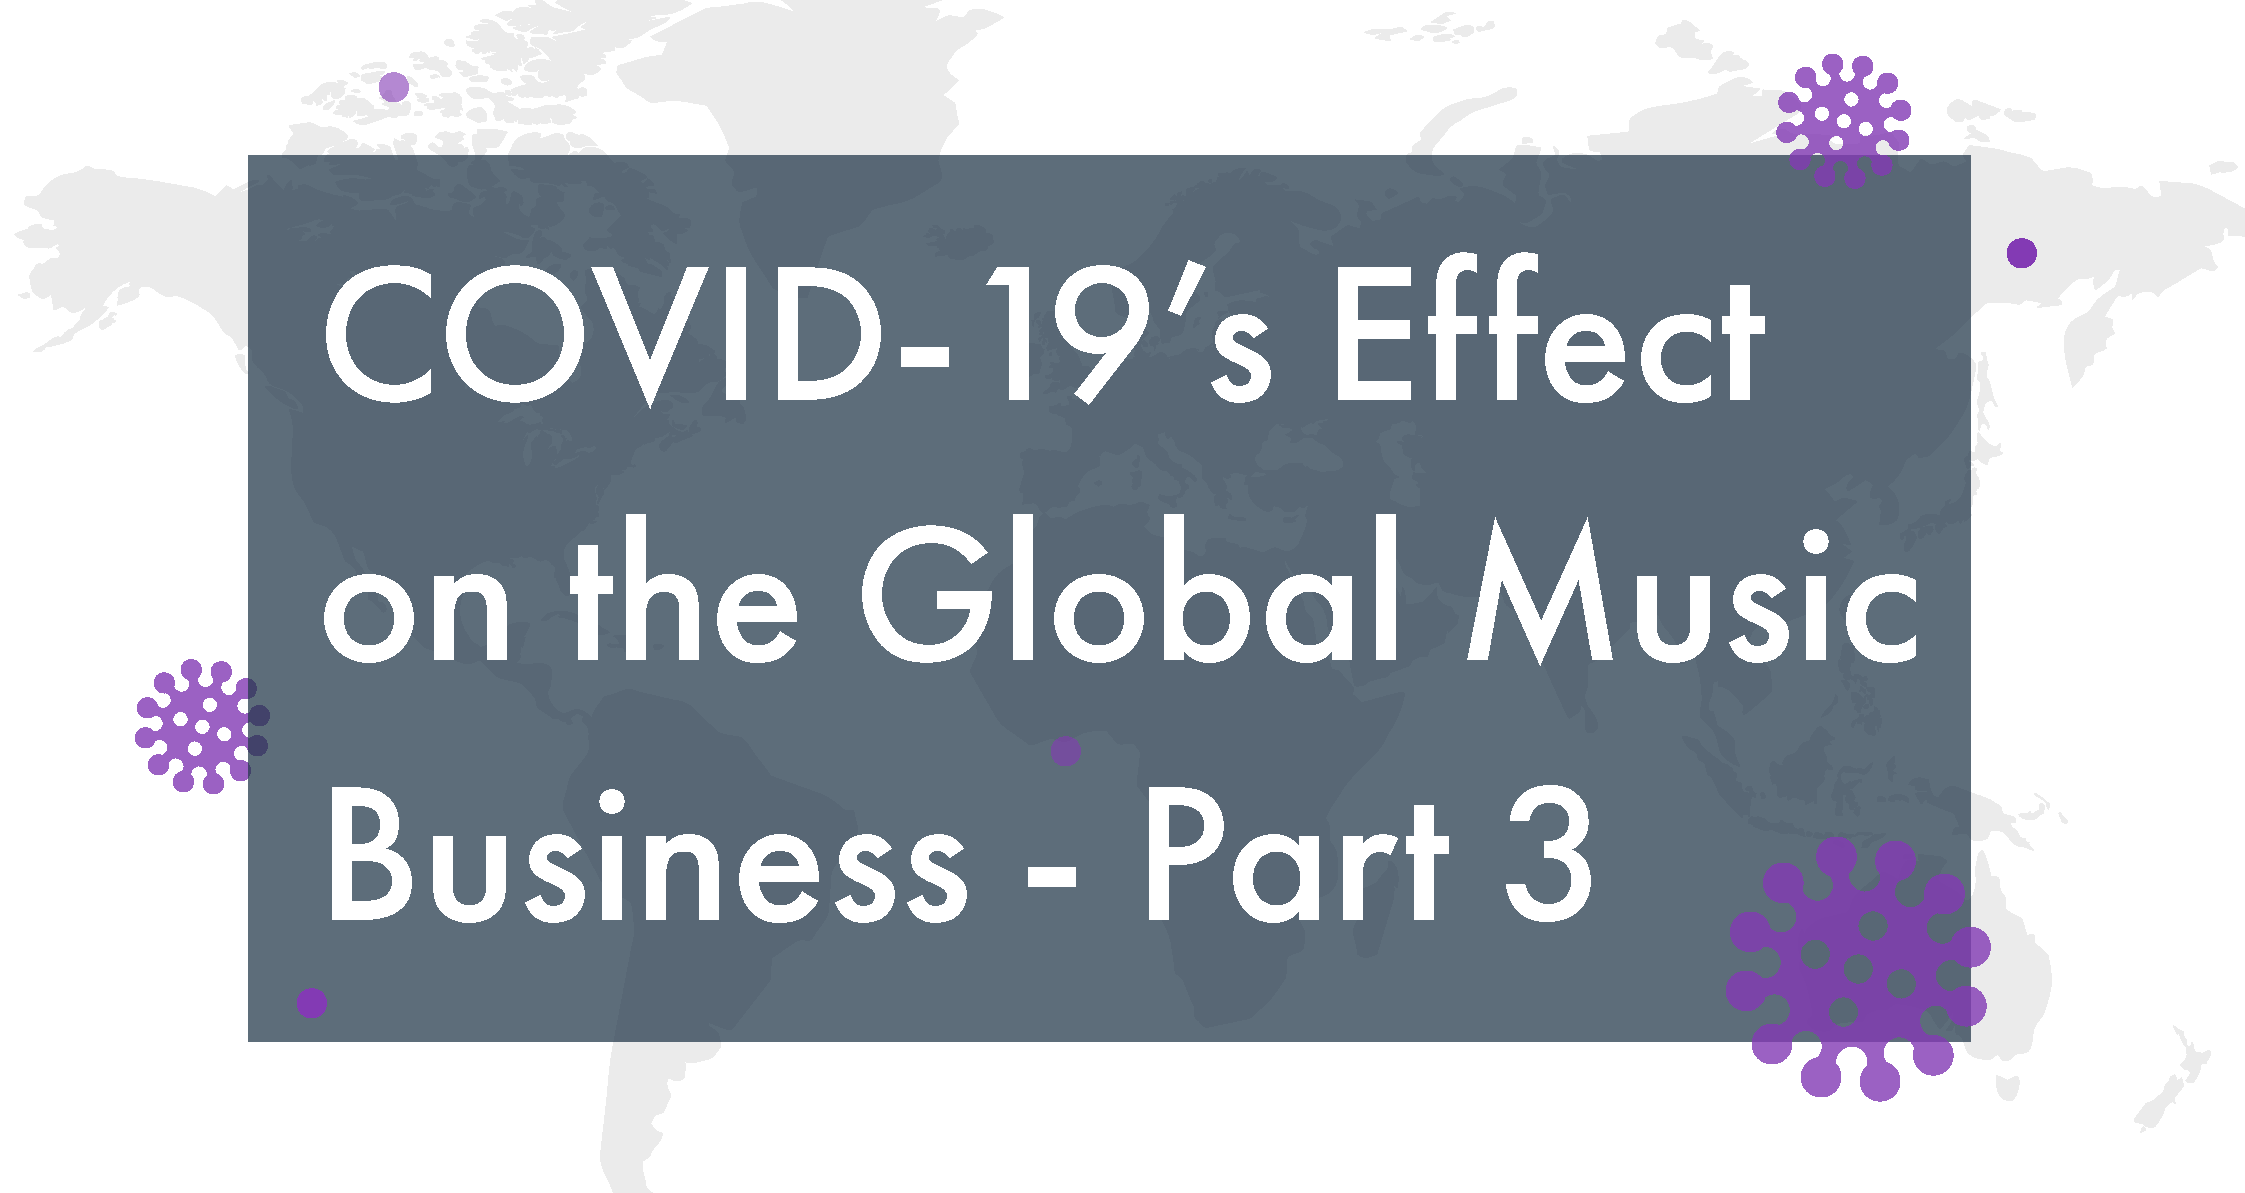 COVID-19's Effect on the Global Music Business, Part 3: Live Streaming Artists